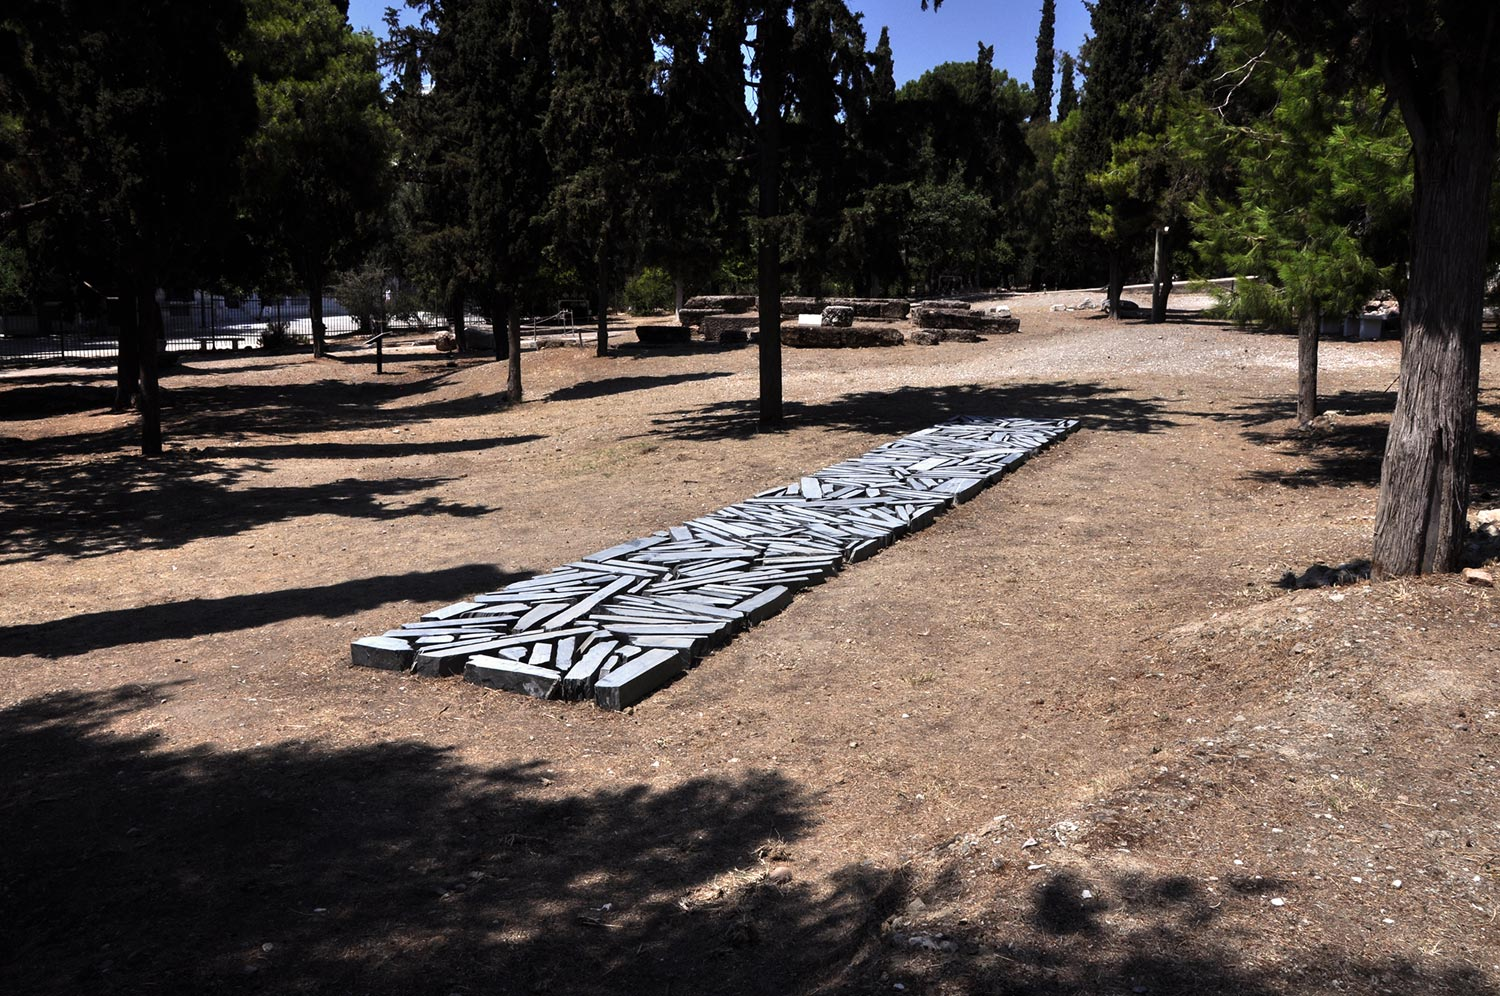 Un'opera di Richard Long, grande artista della Land Art, arriva all'Acropoli di Atene